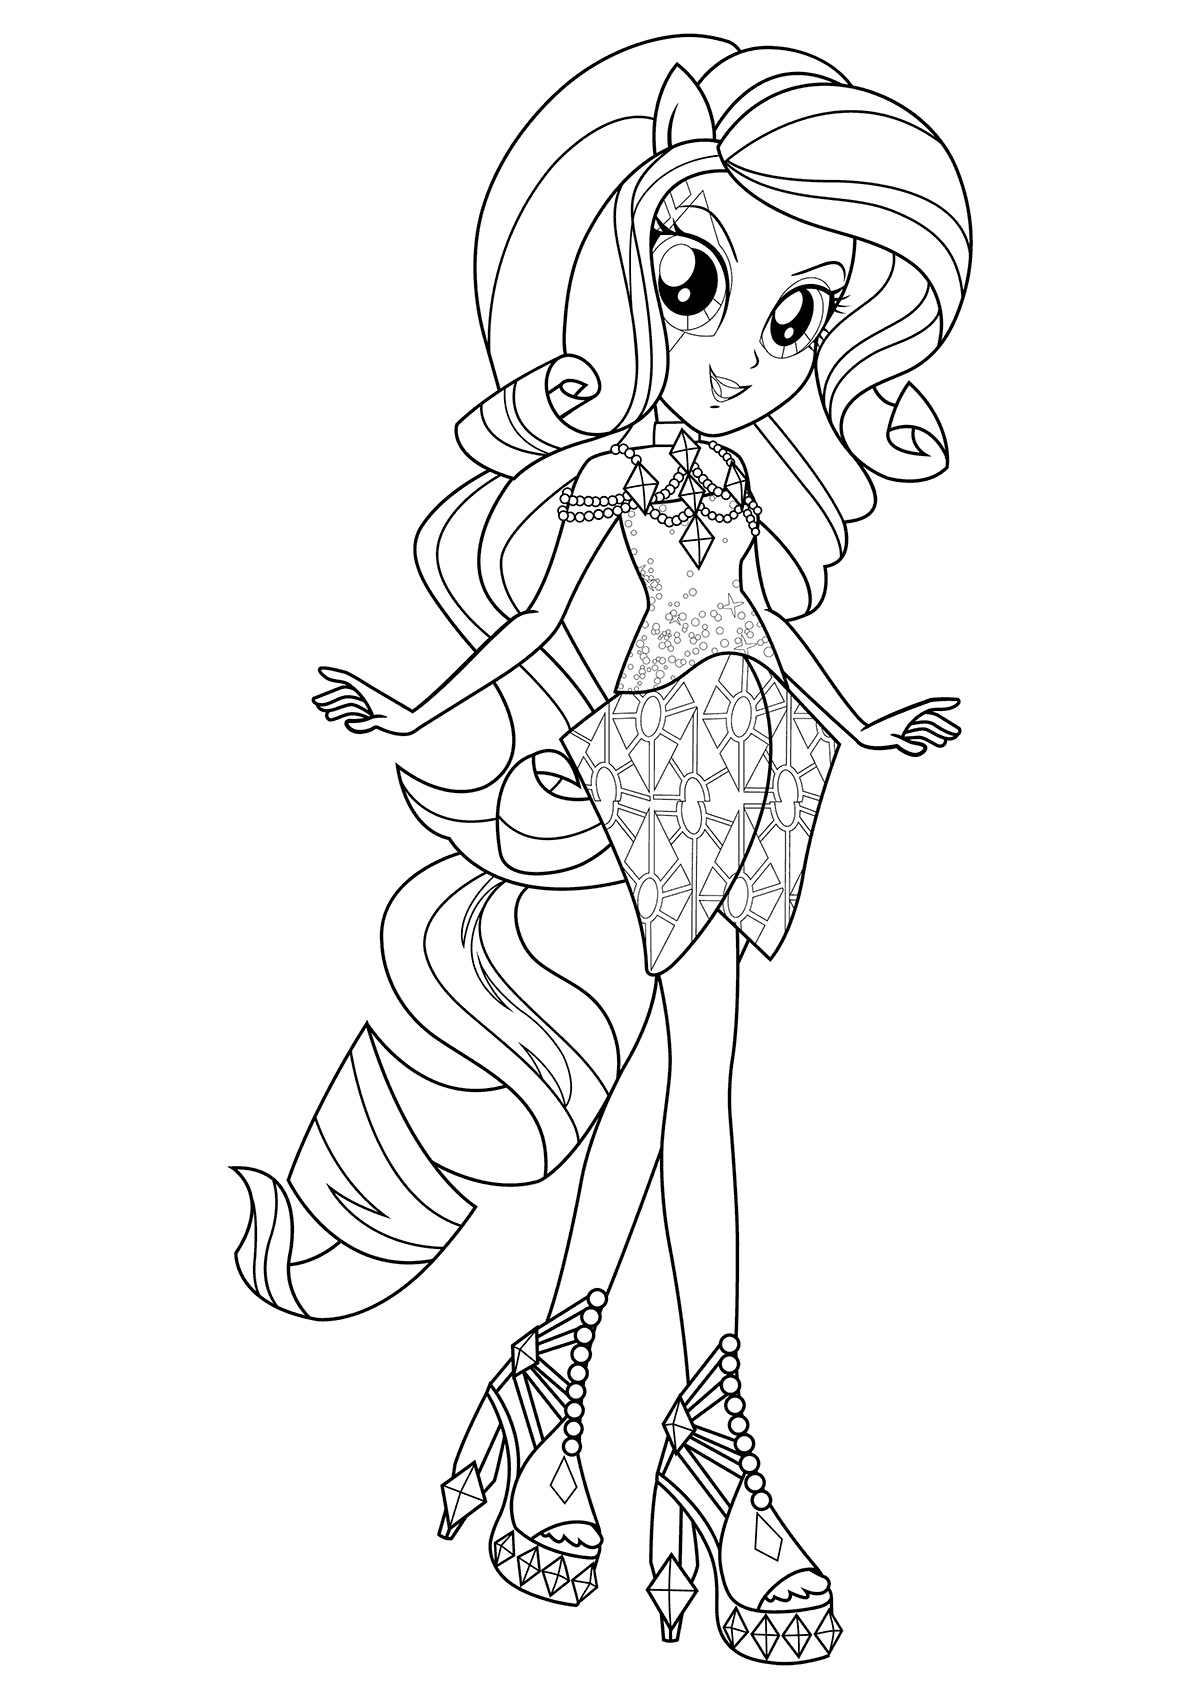 my little pony equestria girl coloring pages equestria girls coloring pages best coloring pages for kids equestria my pony little pages coloring girl